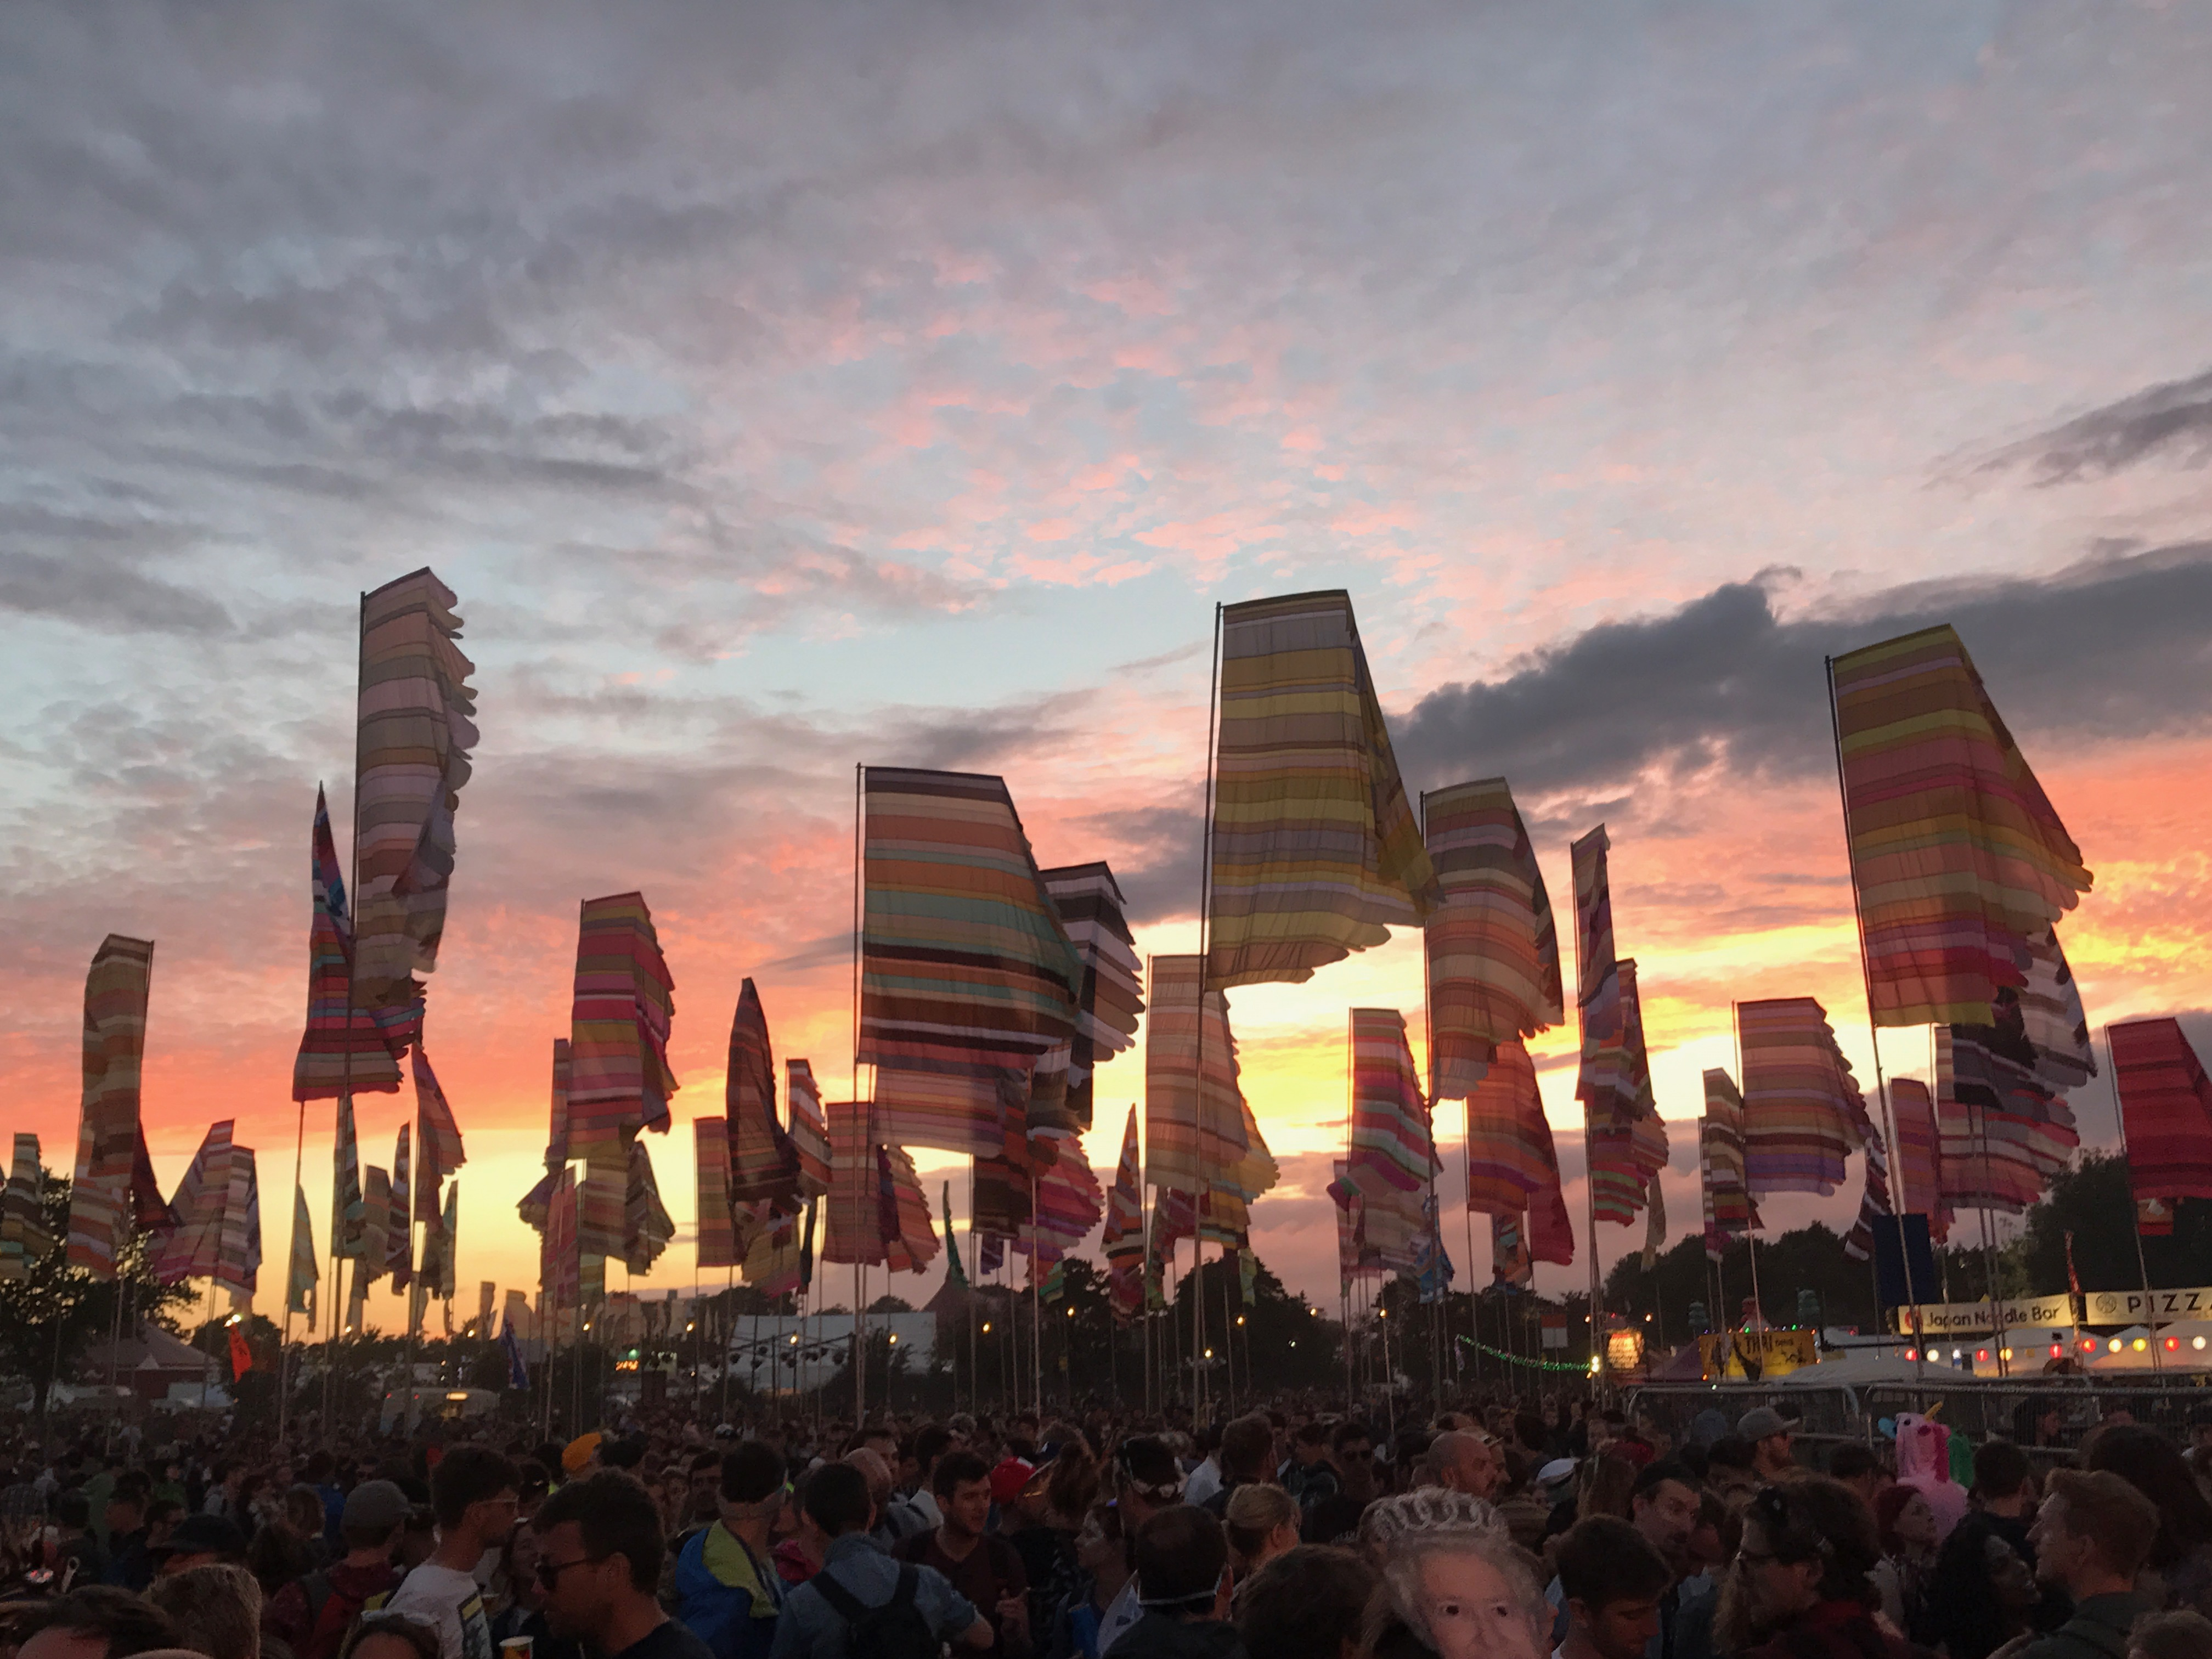 The sun set over West Holts and the flags look majestic in the wind